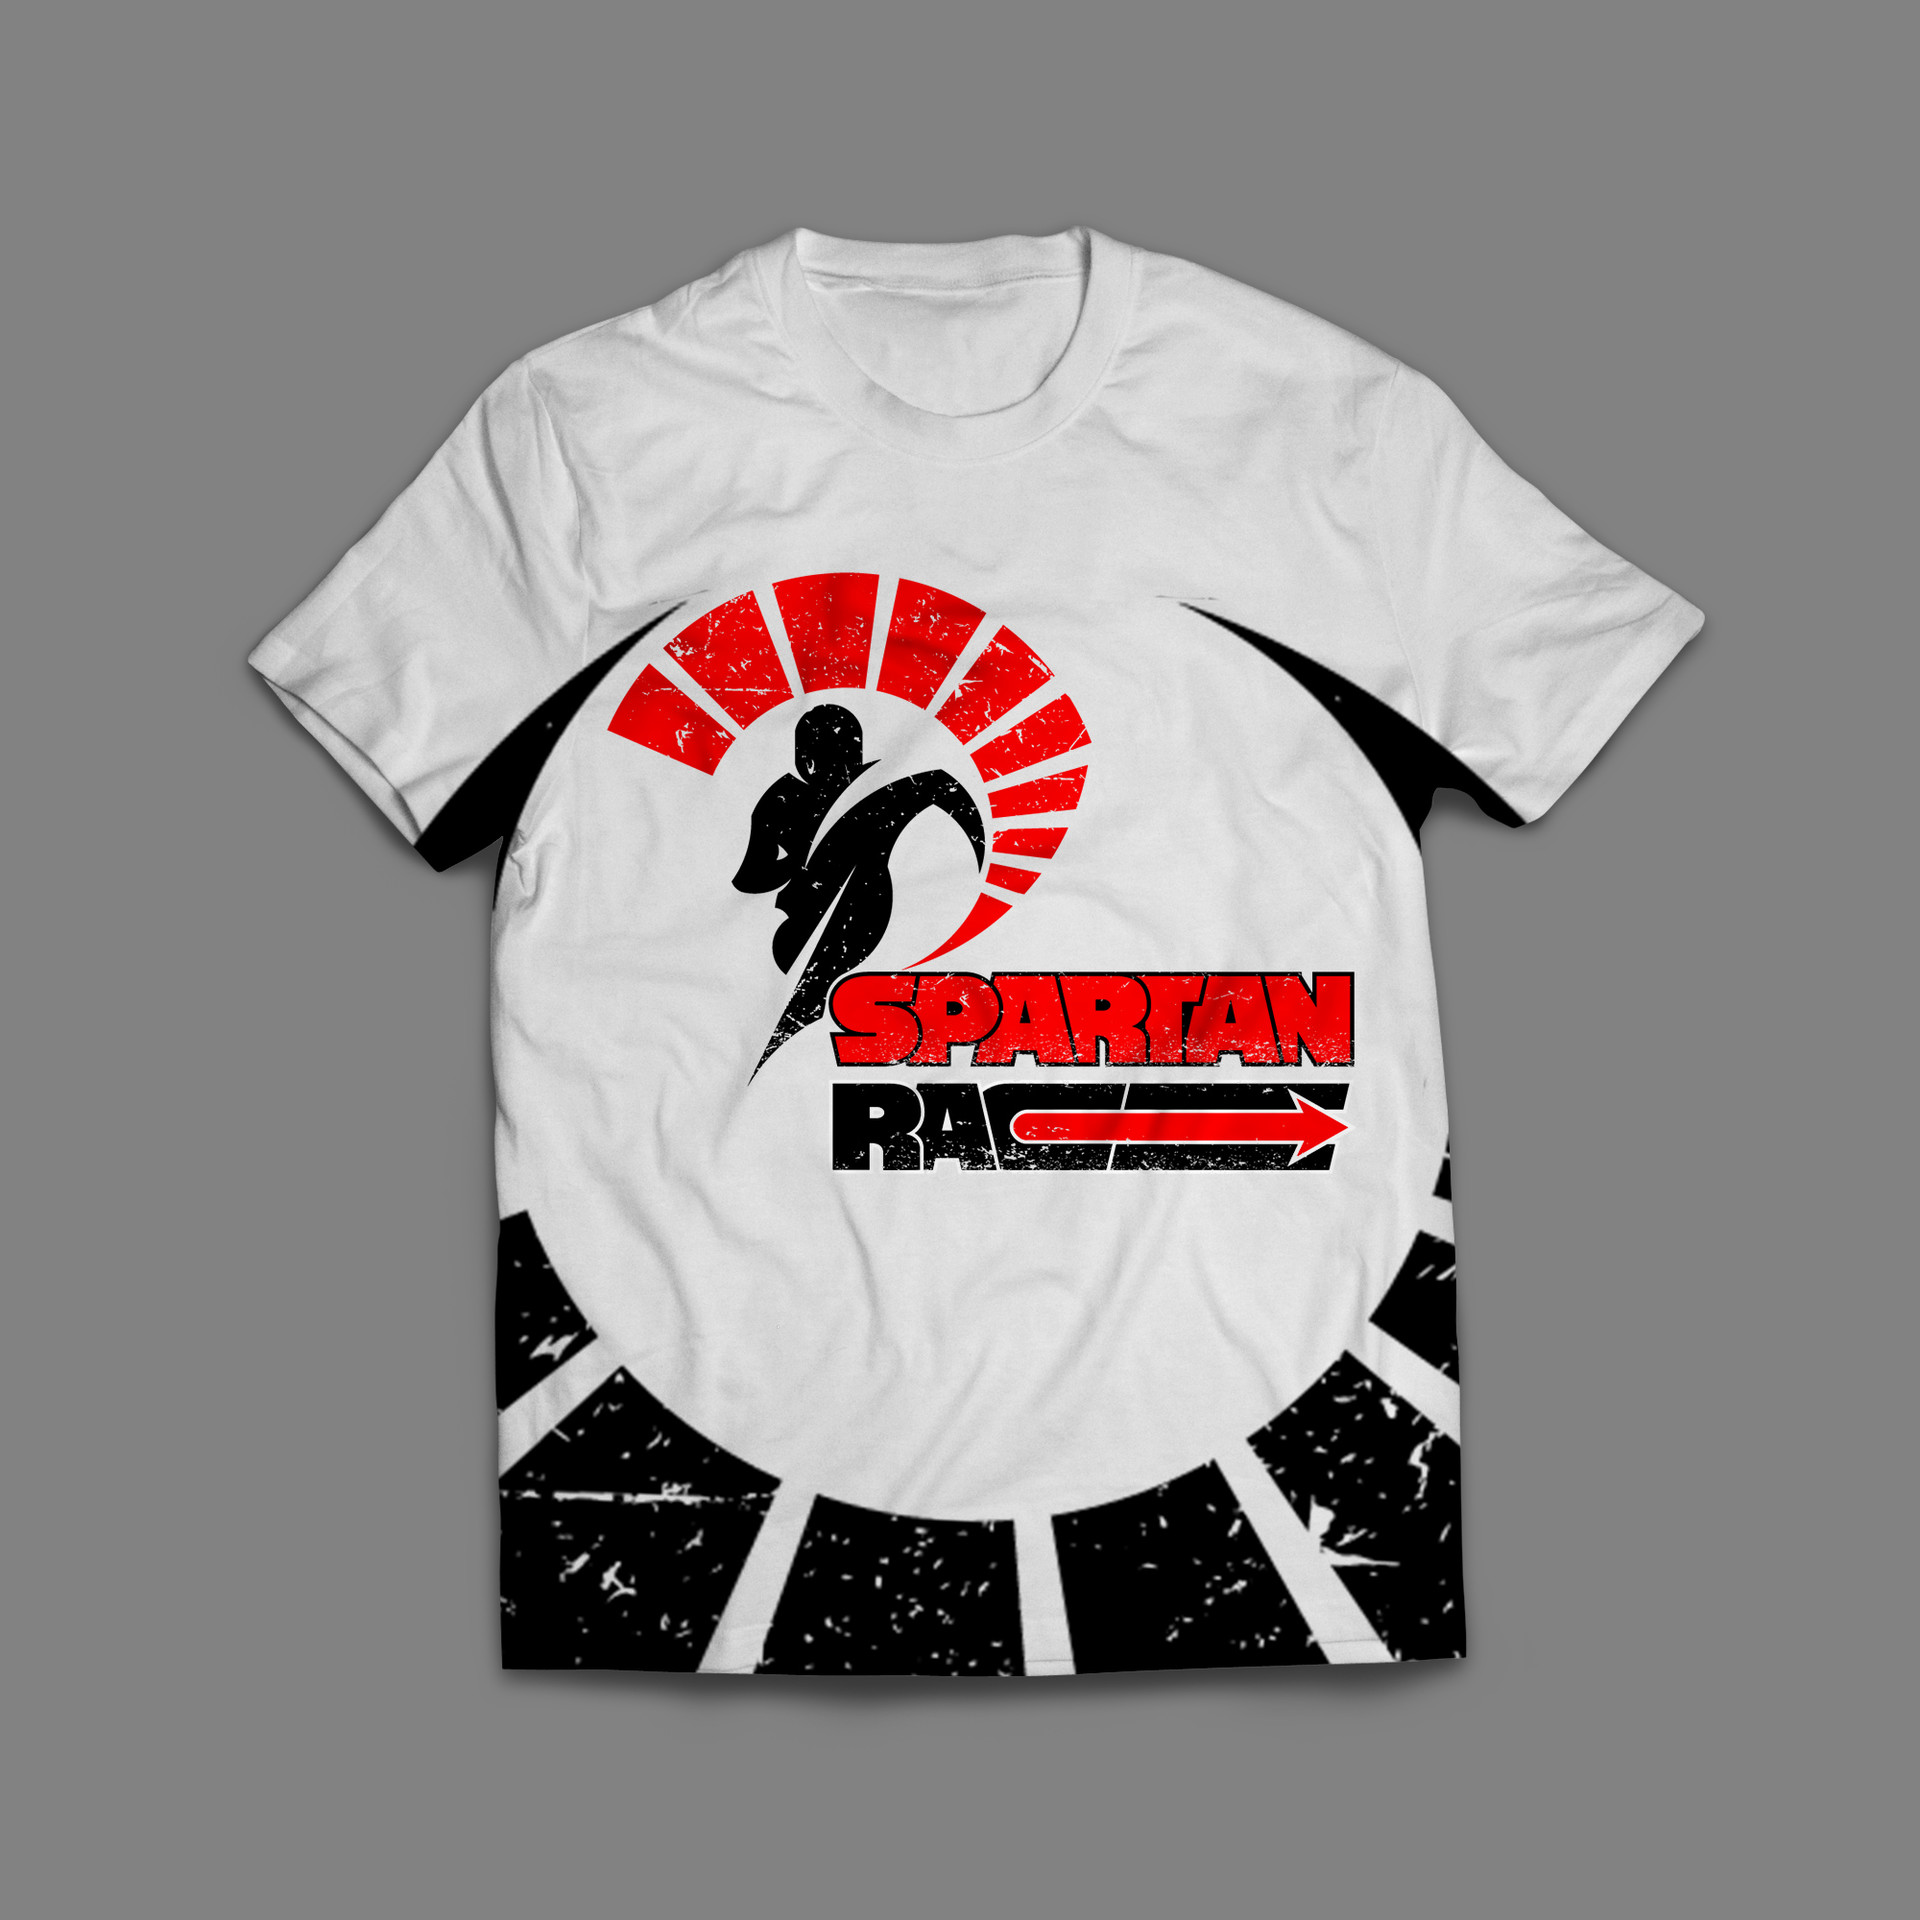 Richard t white jr spartanrace tshirtmockup 05